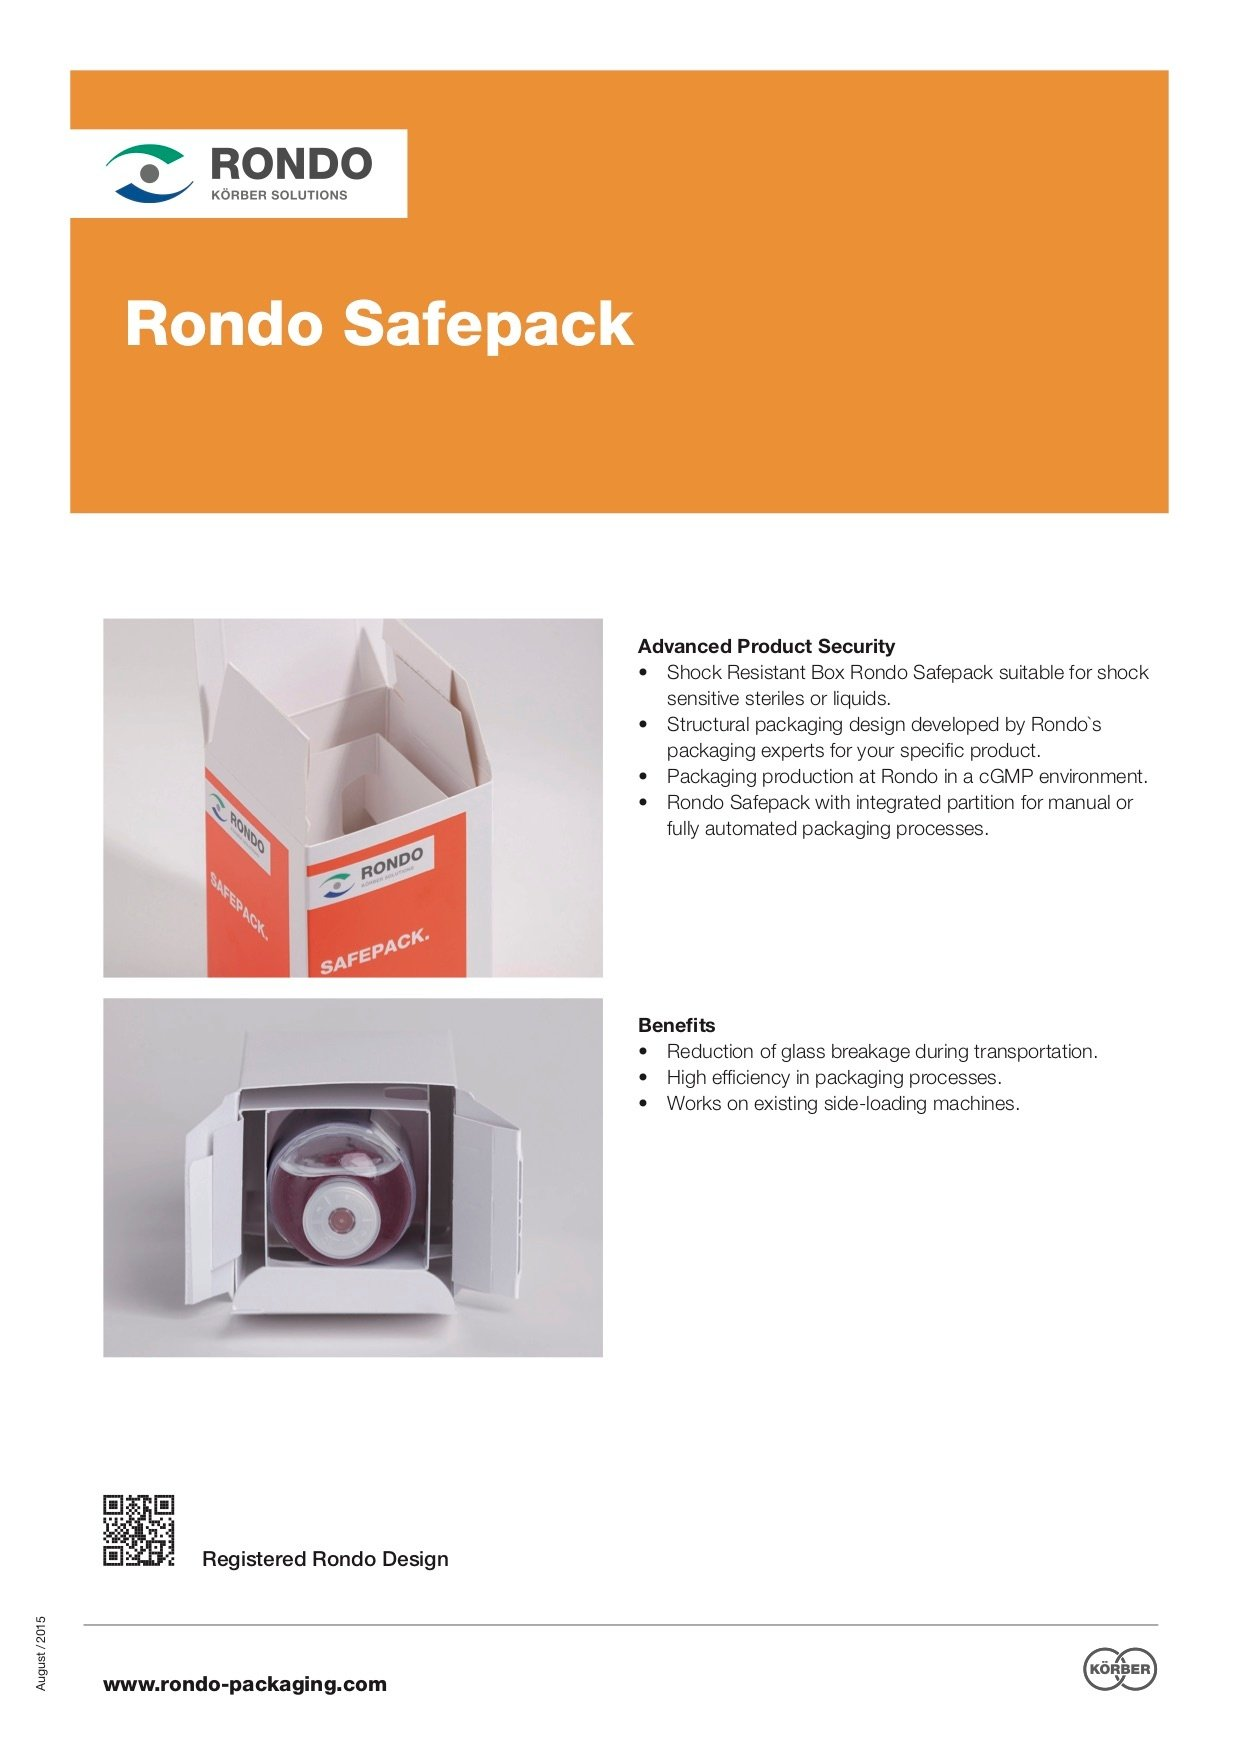 01_Rondo_Solutions_Safepack_2015-08_EN